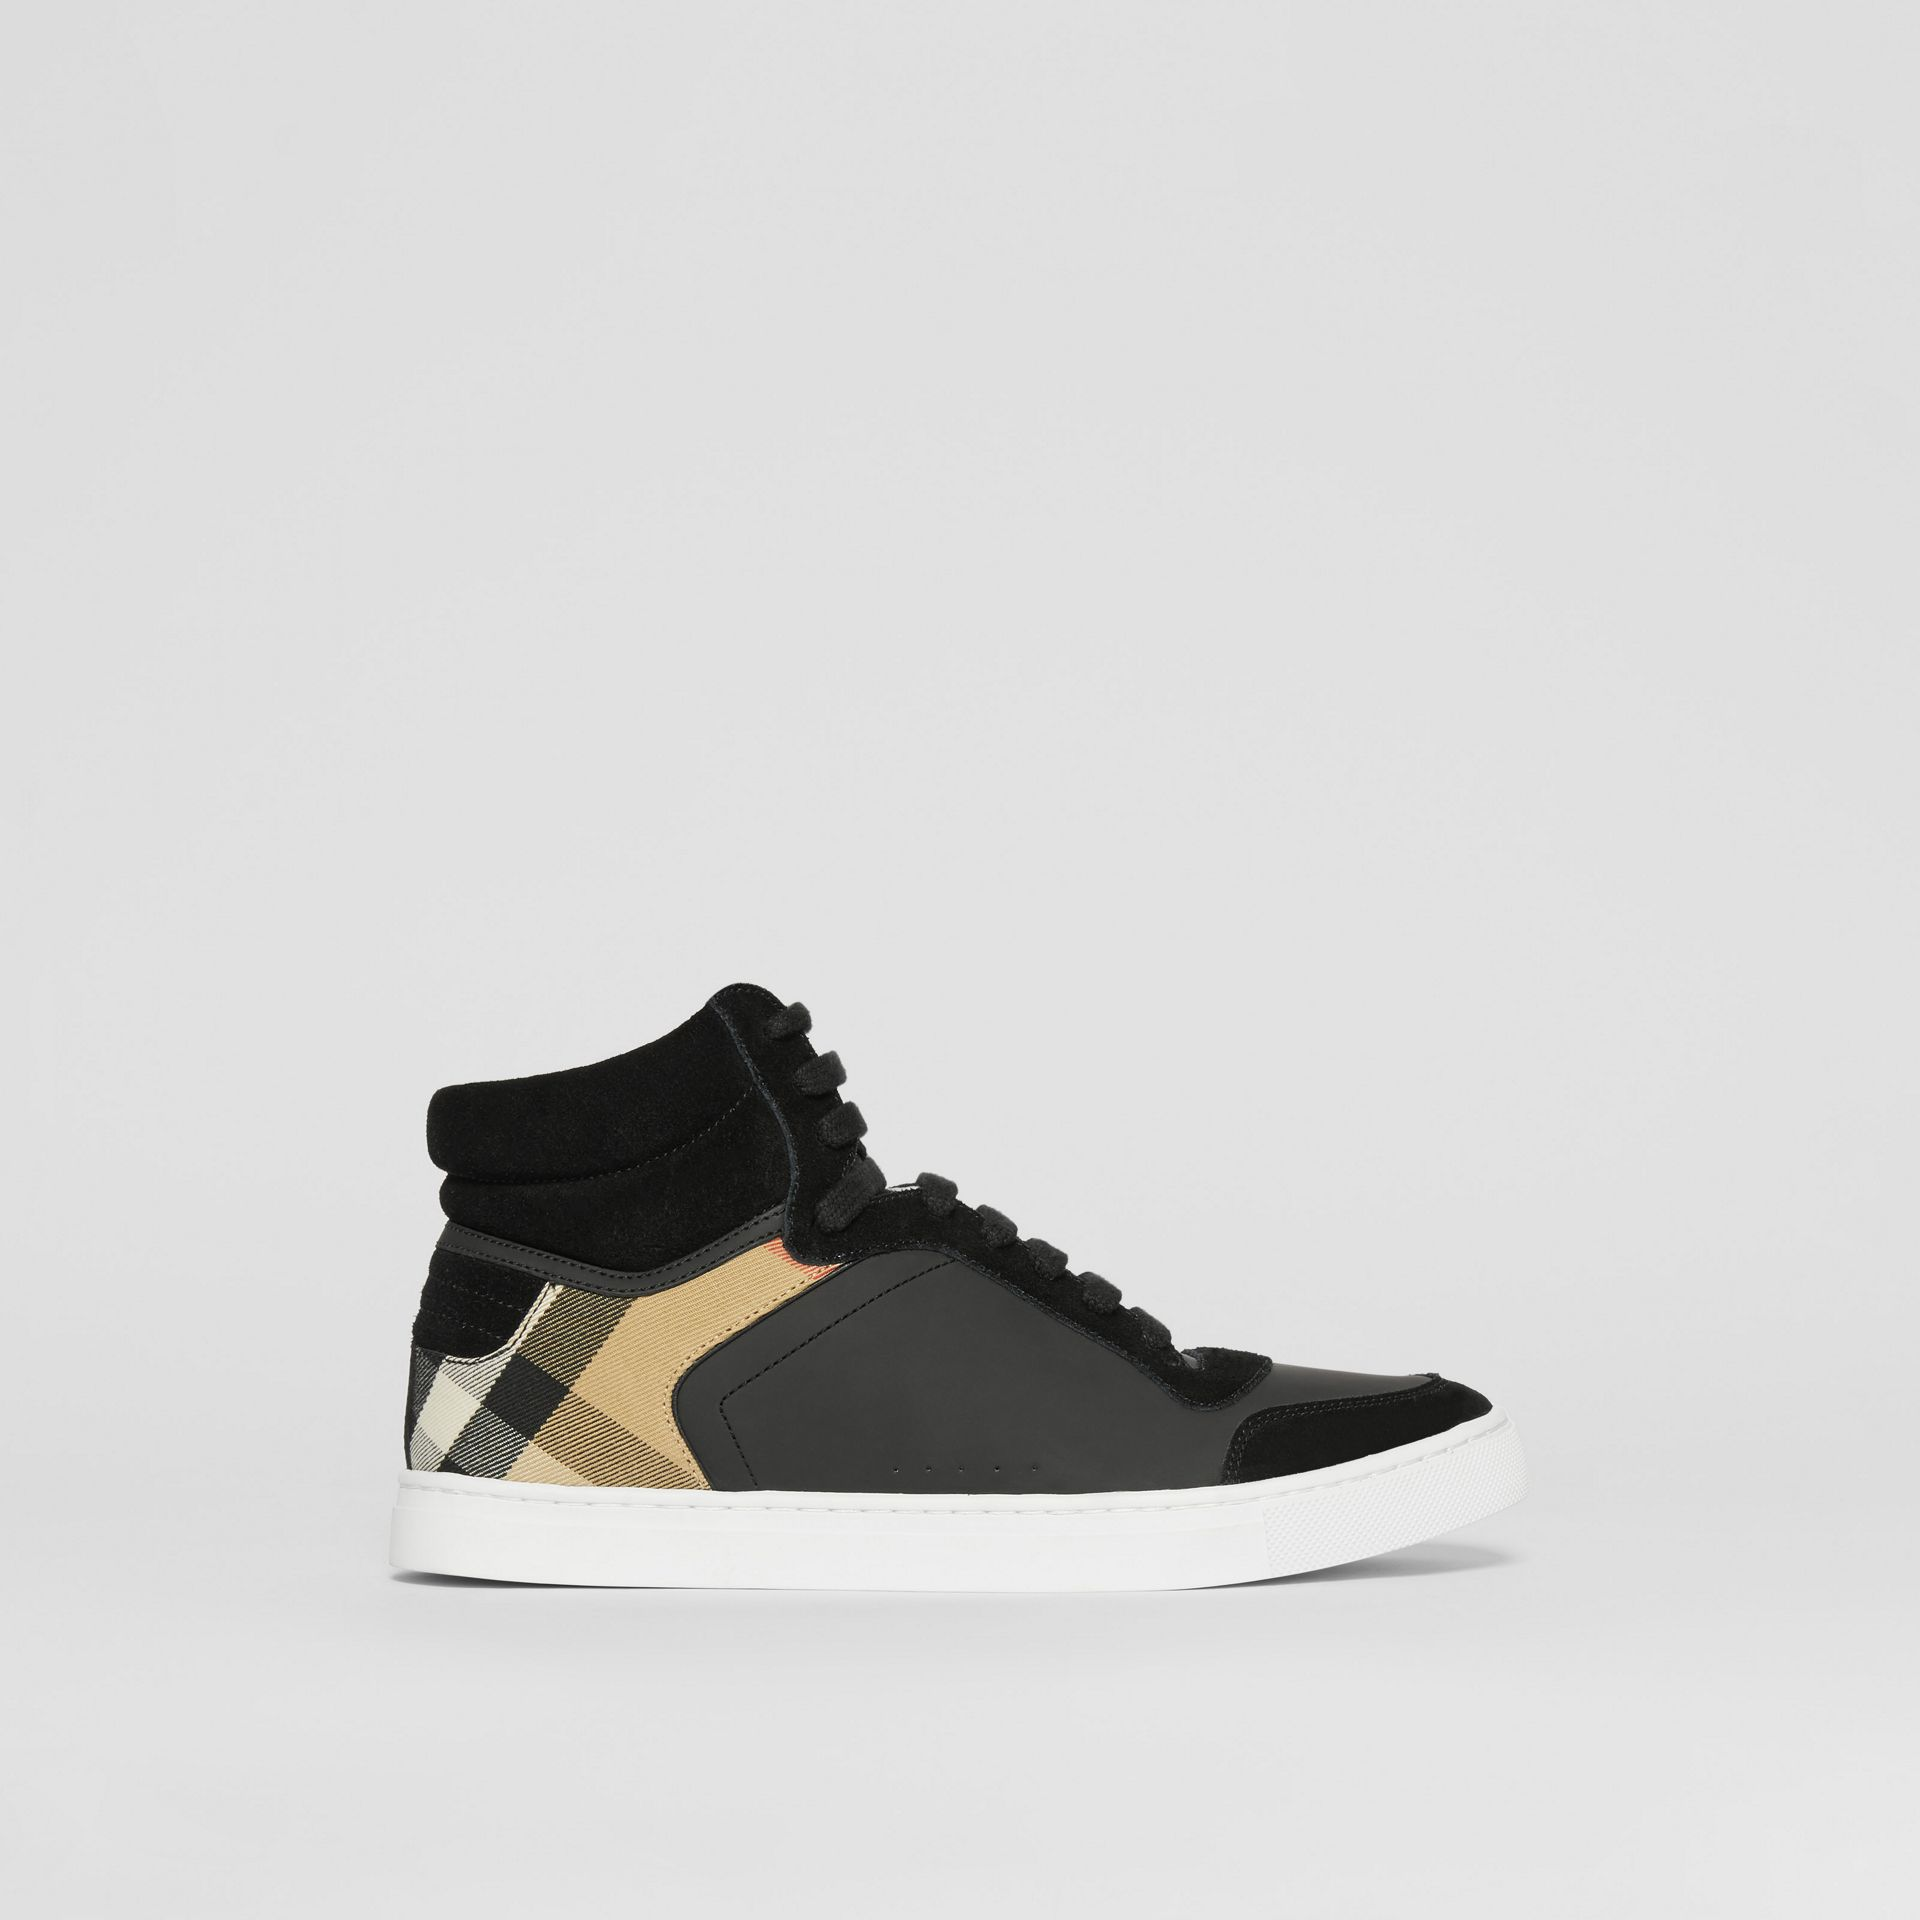 Leather, Suede and House Check High-top Sneakers in Black - Men | Burberry United States - gallery image 4